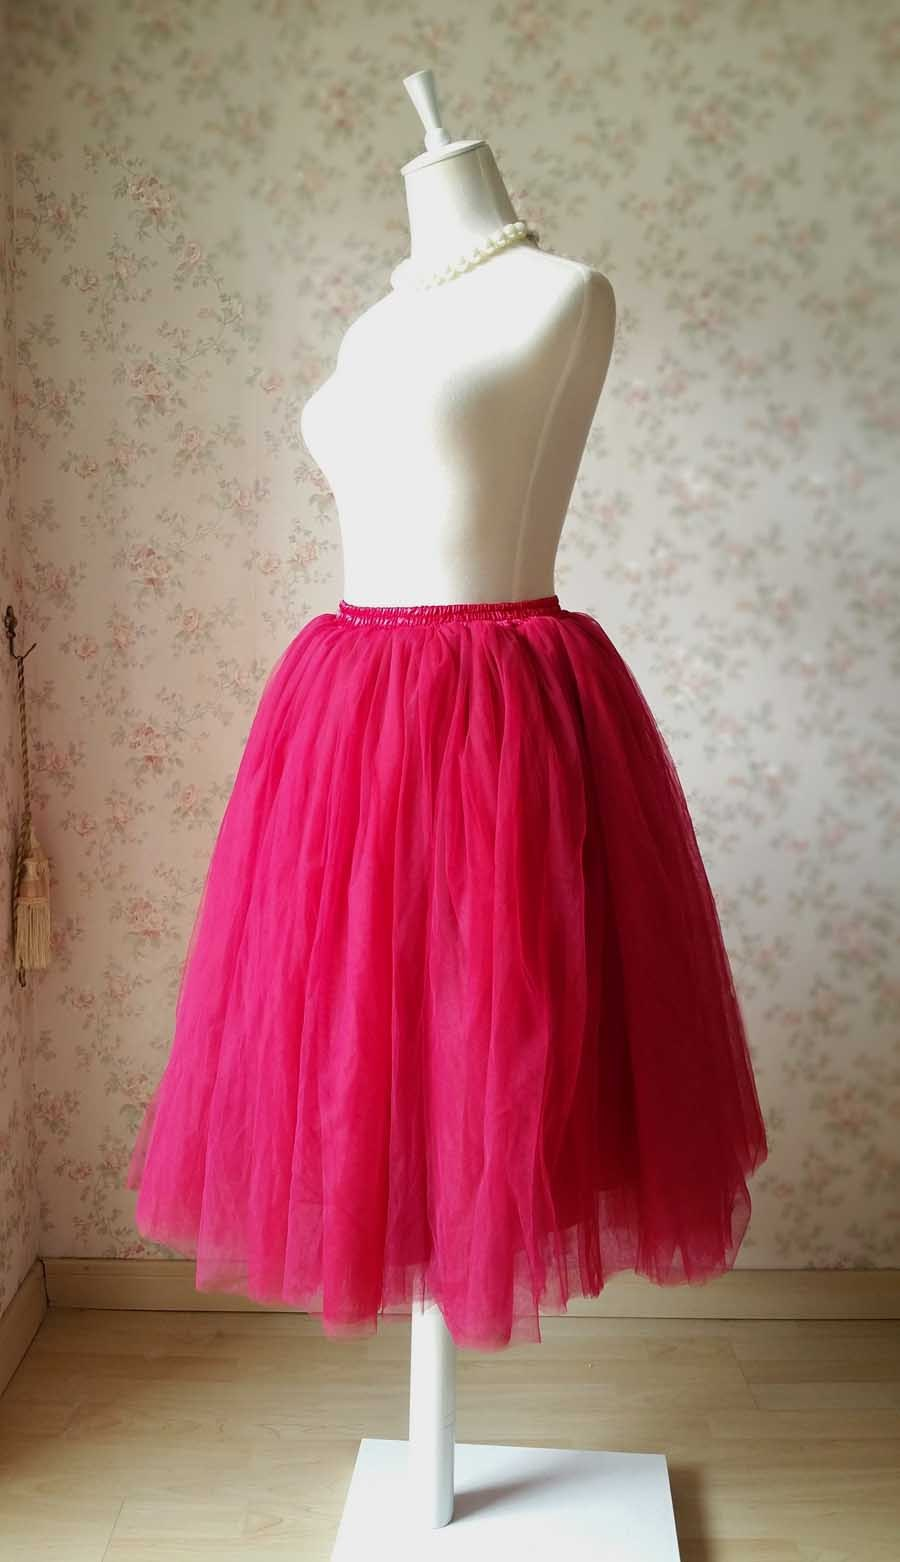 Deep Red Elastic High Waist Midi Tulle Skirt Adult Tea Length Midi Party Skirts